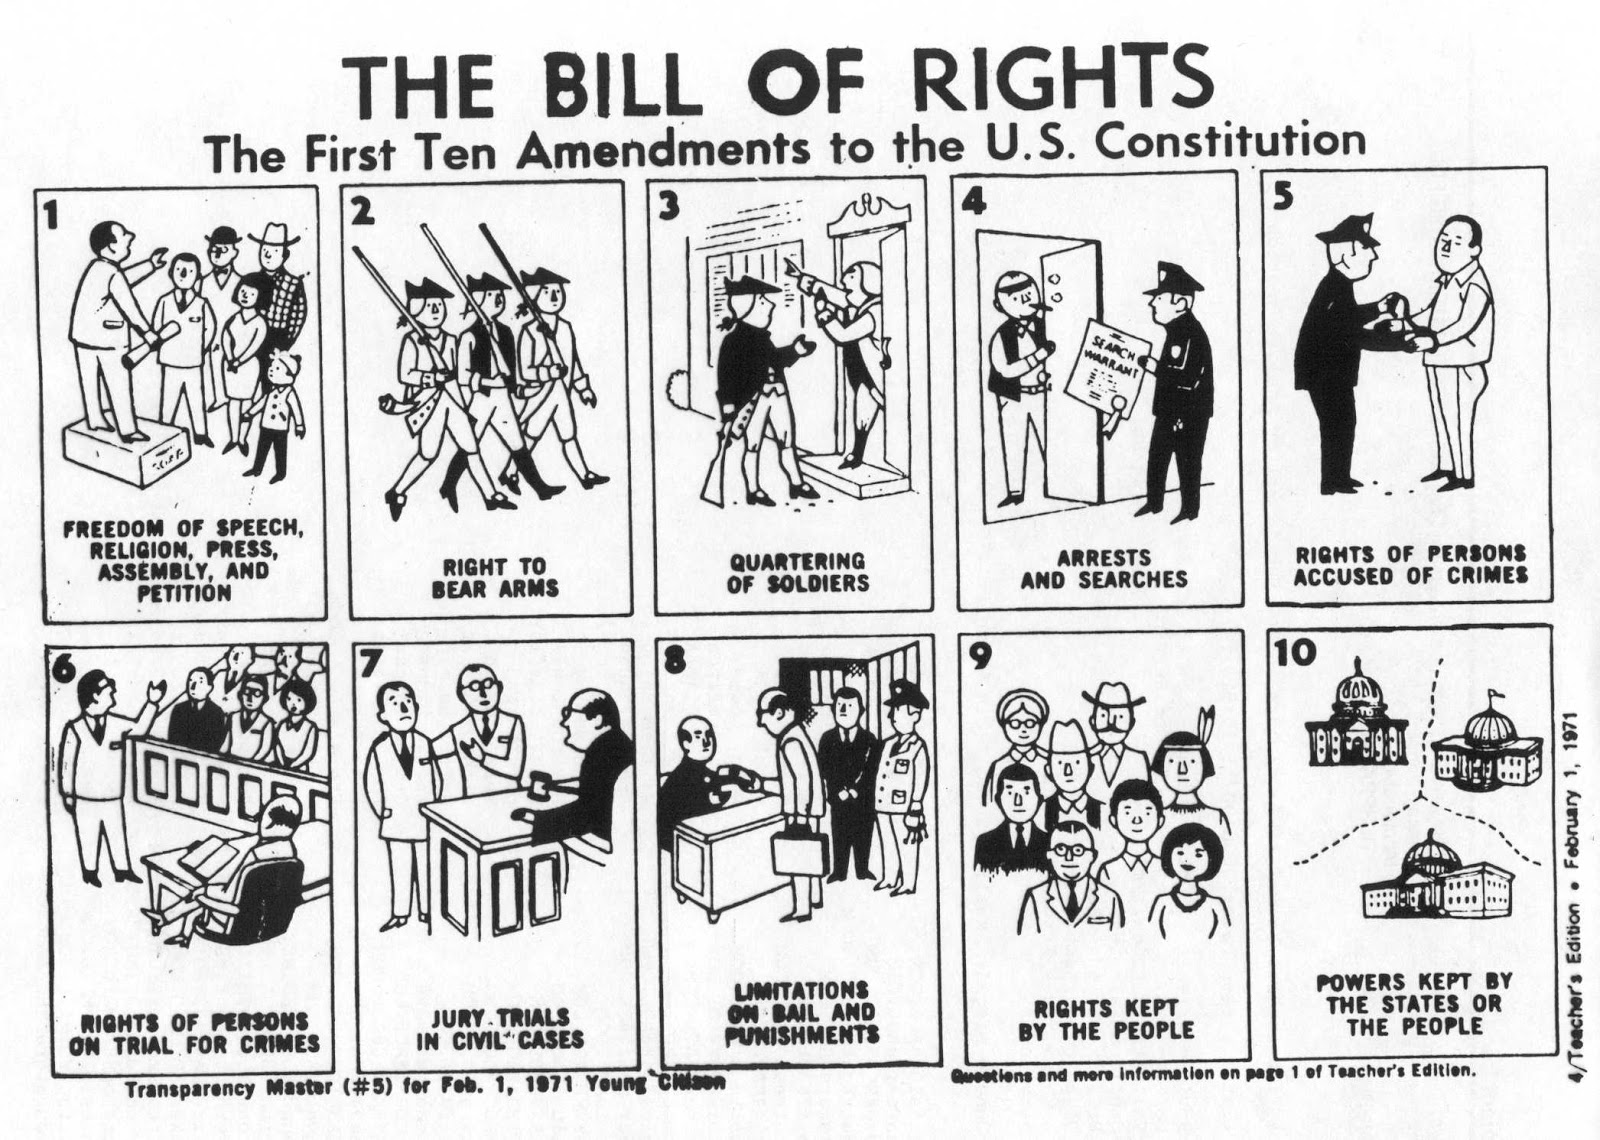 the bill of rights why they Few remember the reasons why the federalists opposed the bill of rights, or why the antifederalists (opponents of giving new power to the federal government) insisted.